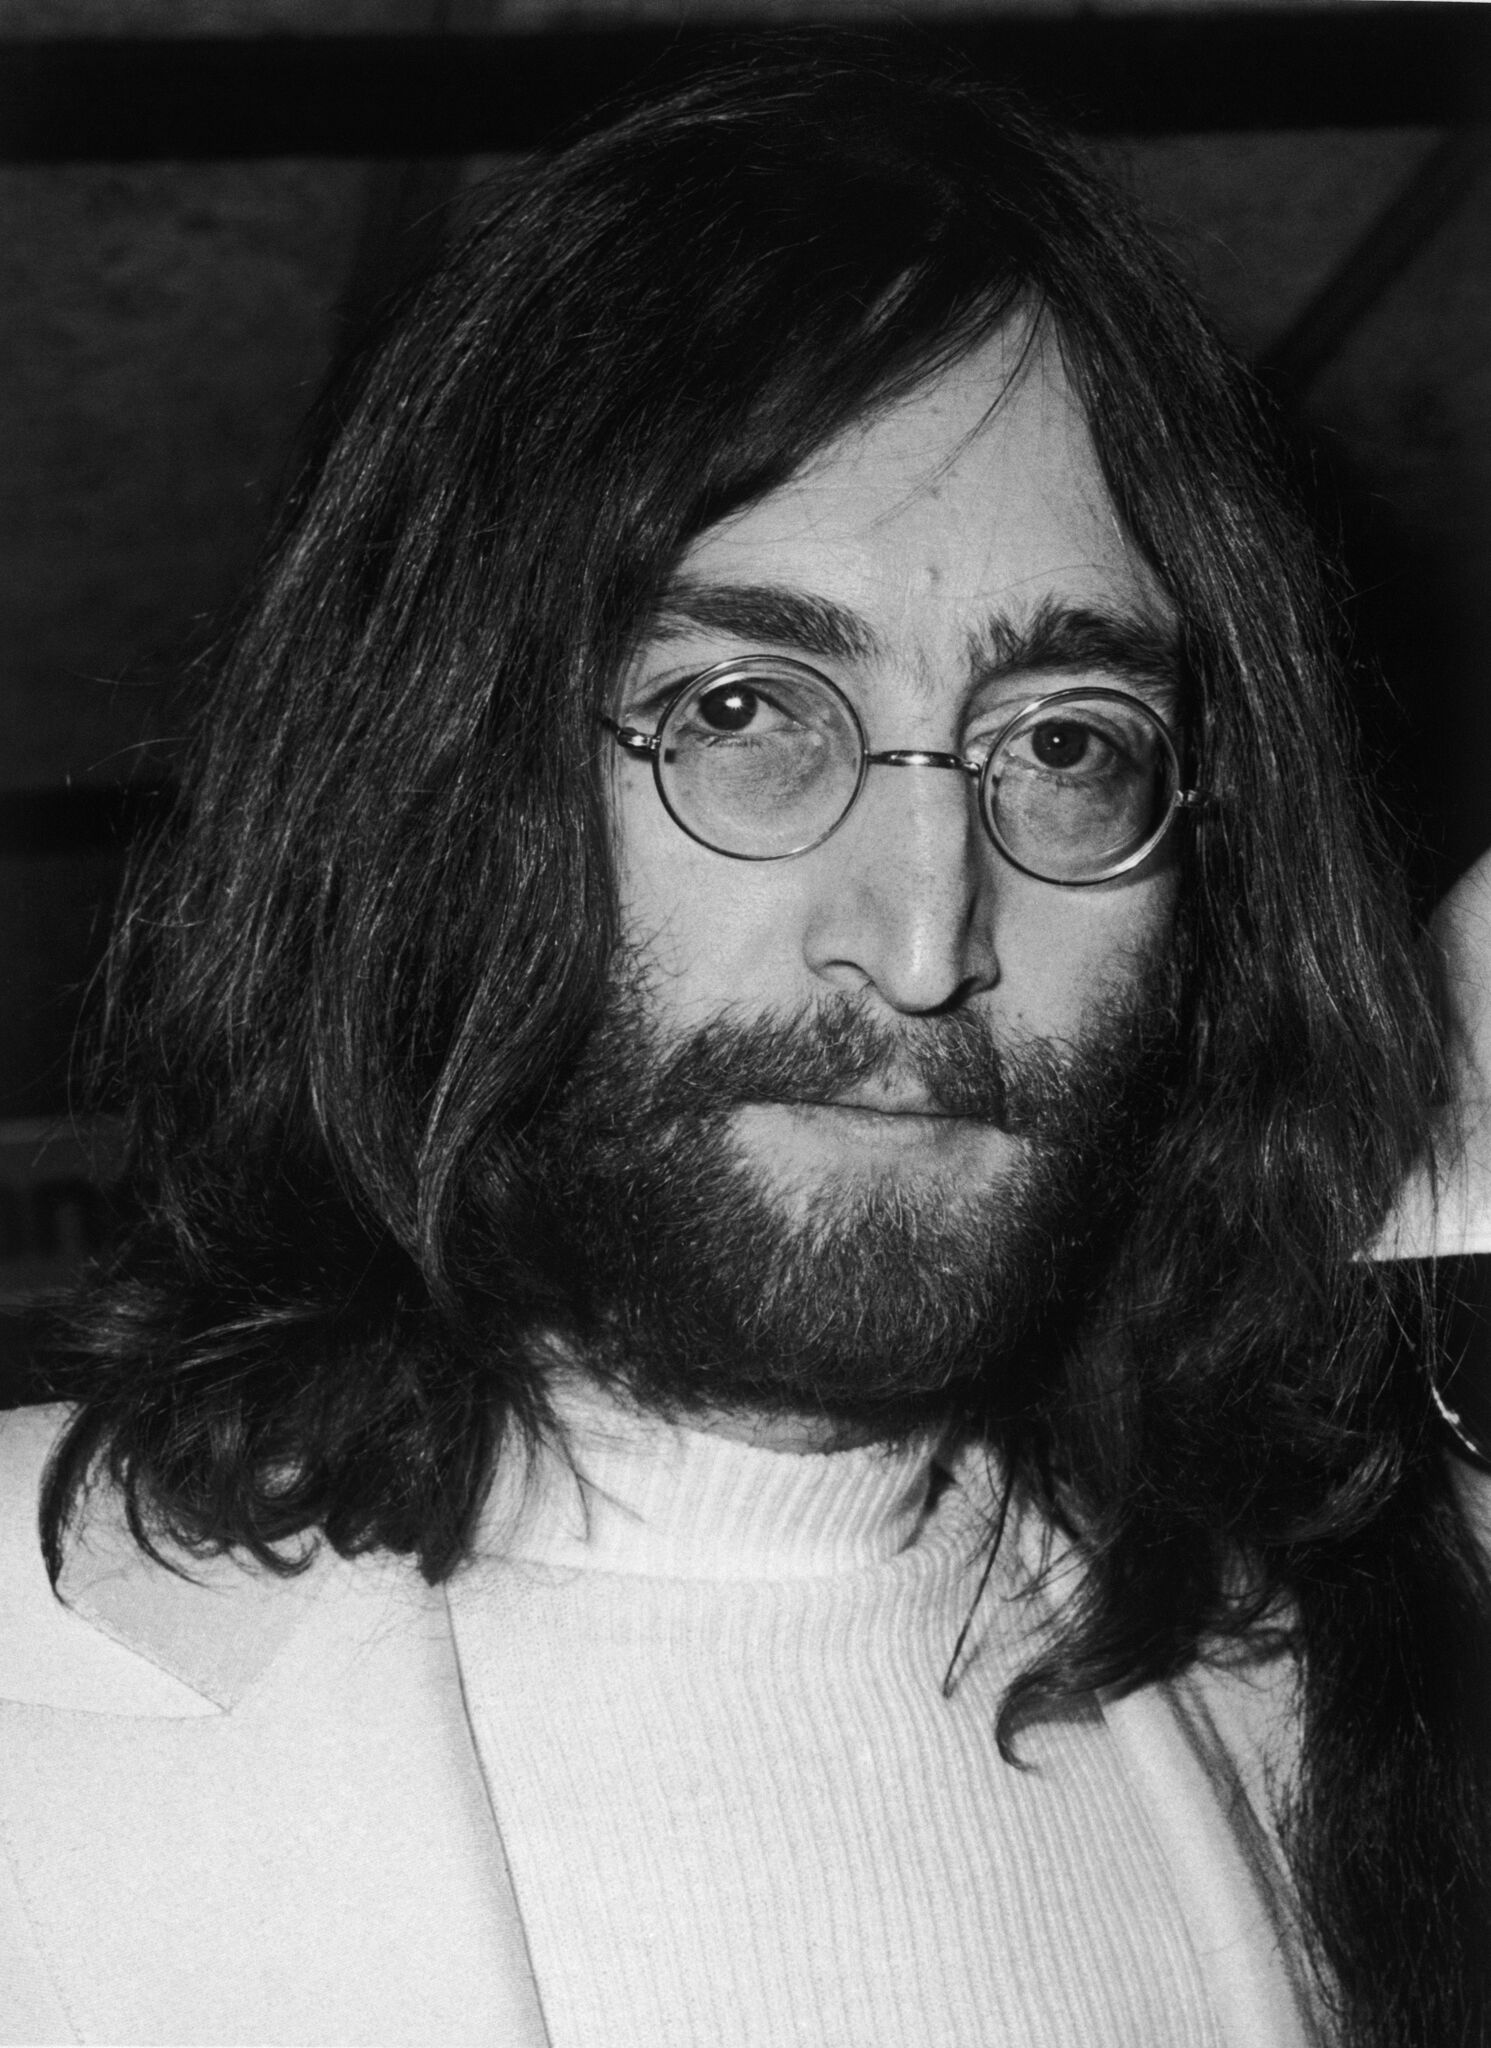 Singer, songwriter and guitarist John Lennon (1940 - 1980) of The Beatles, at a press conference at Heathrow airport | Getty Images